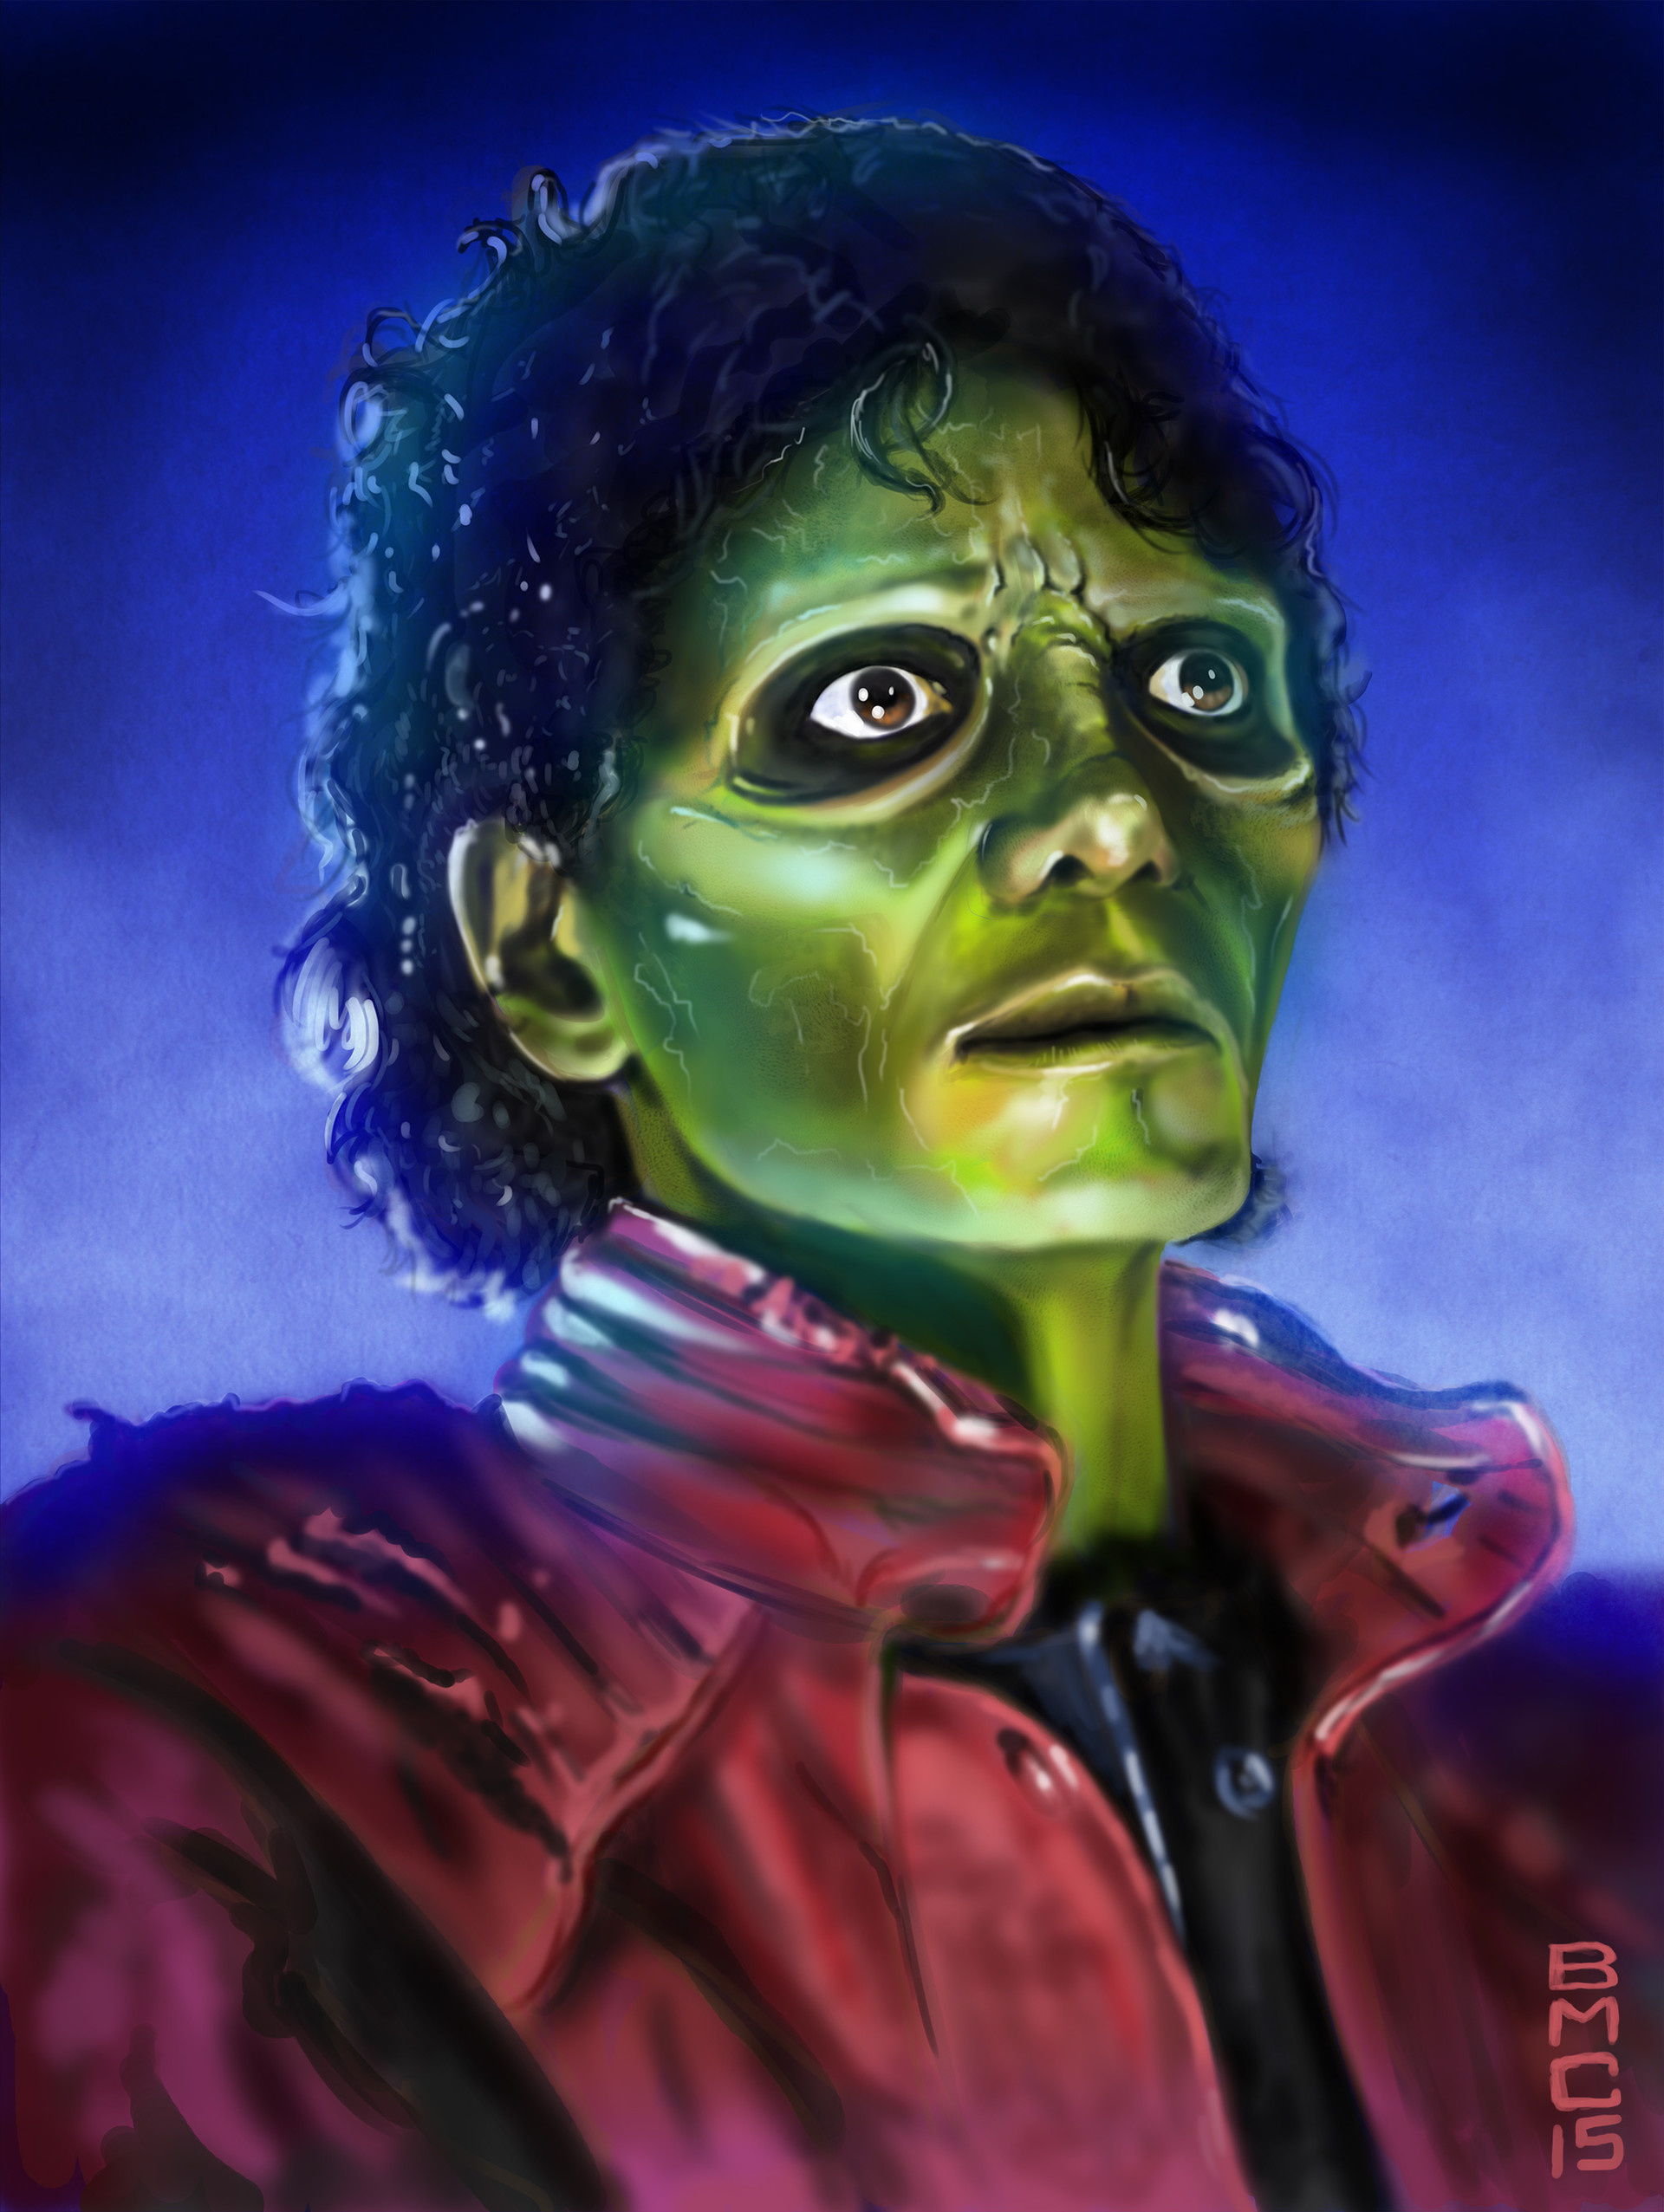 Iphone Wallpaper Michael Jackson Michael Jackson Thriller Pictures